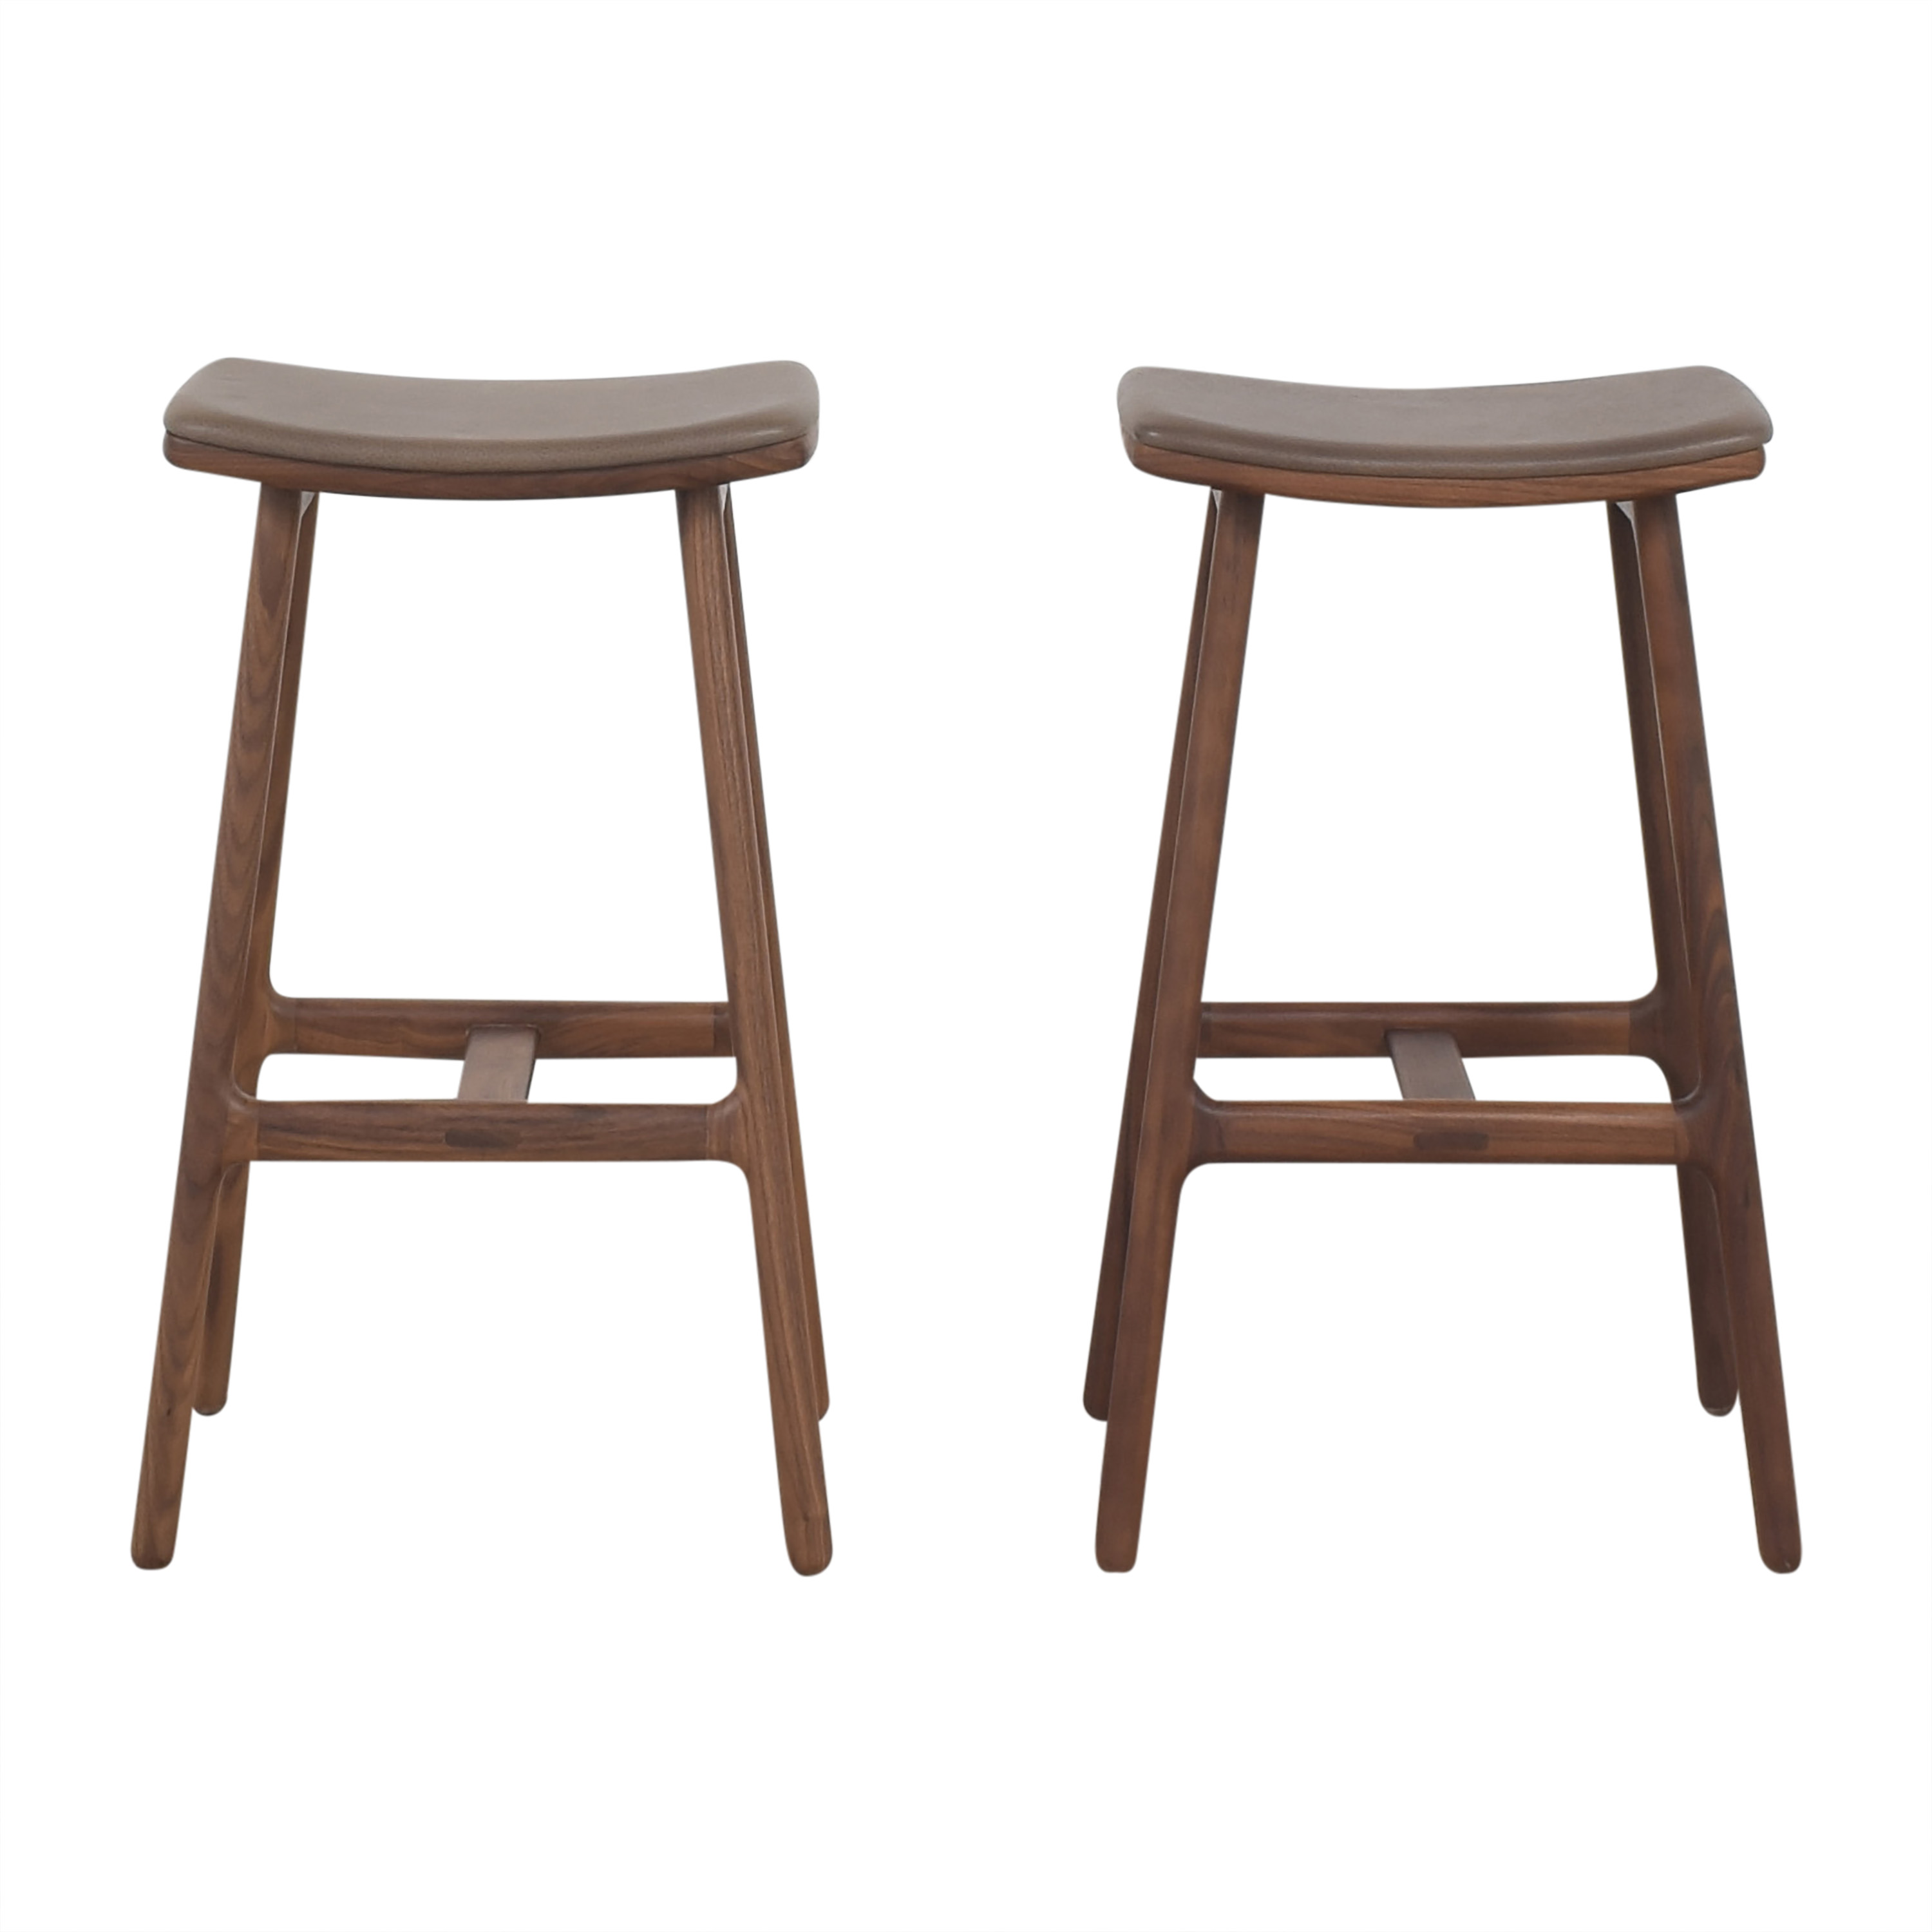 Article Esse Canyon Counter Stools / Stools